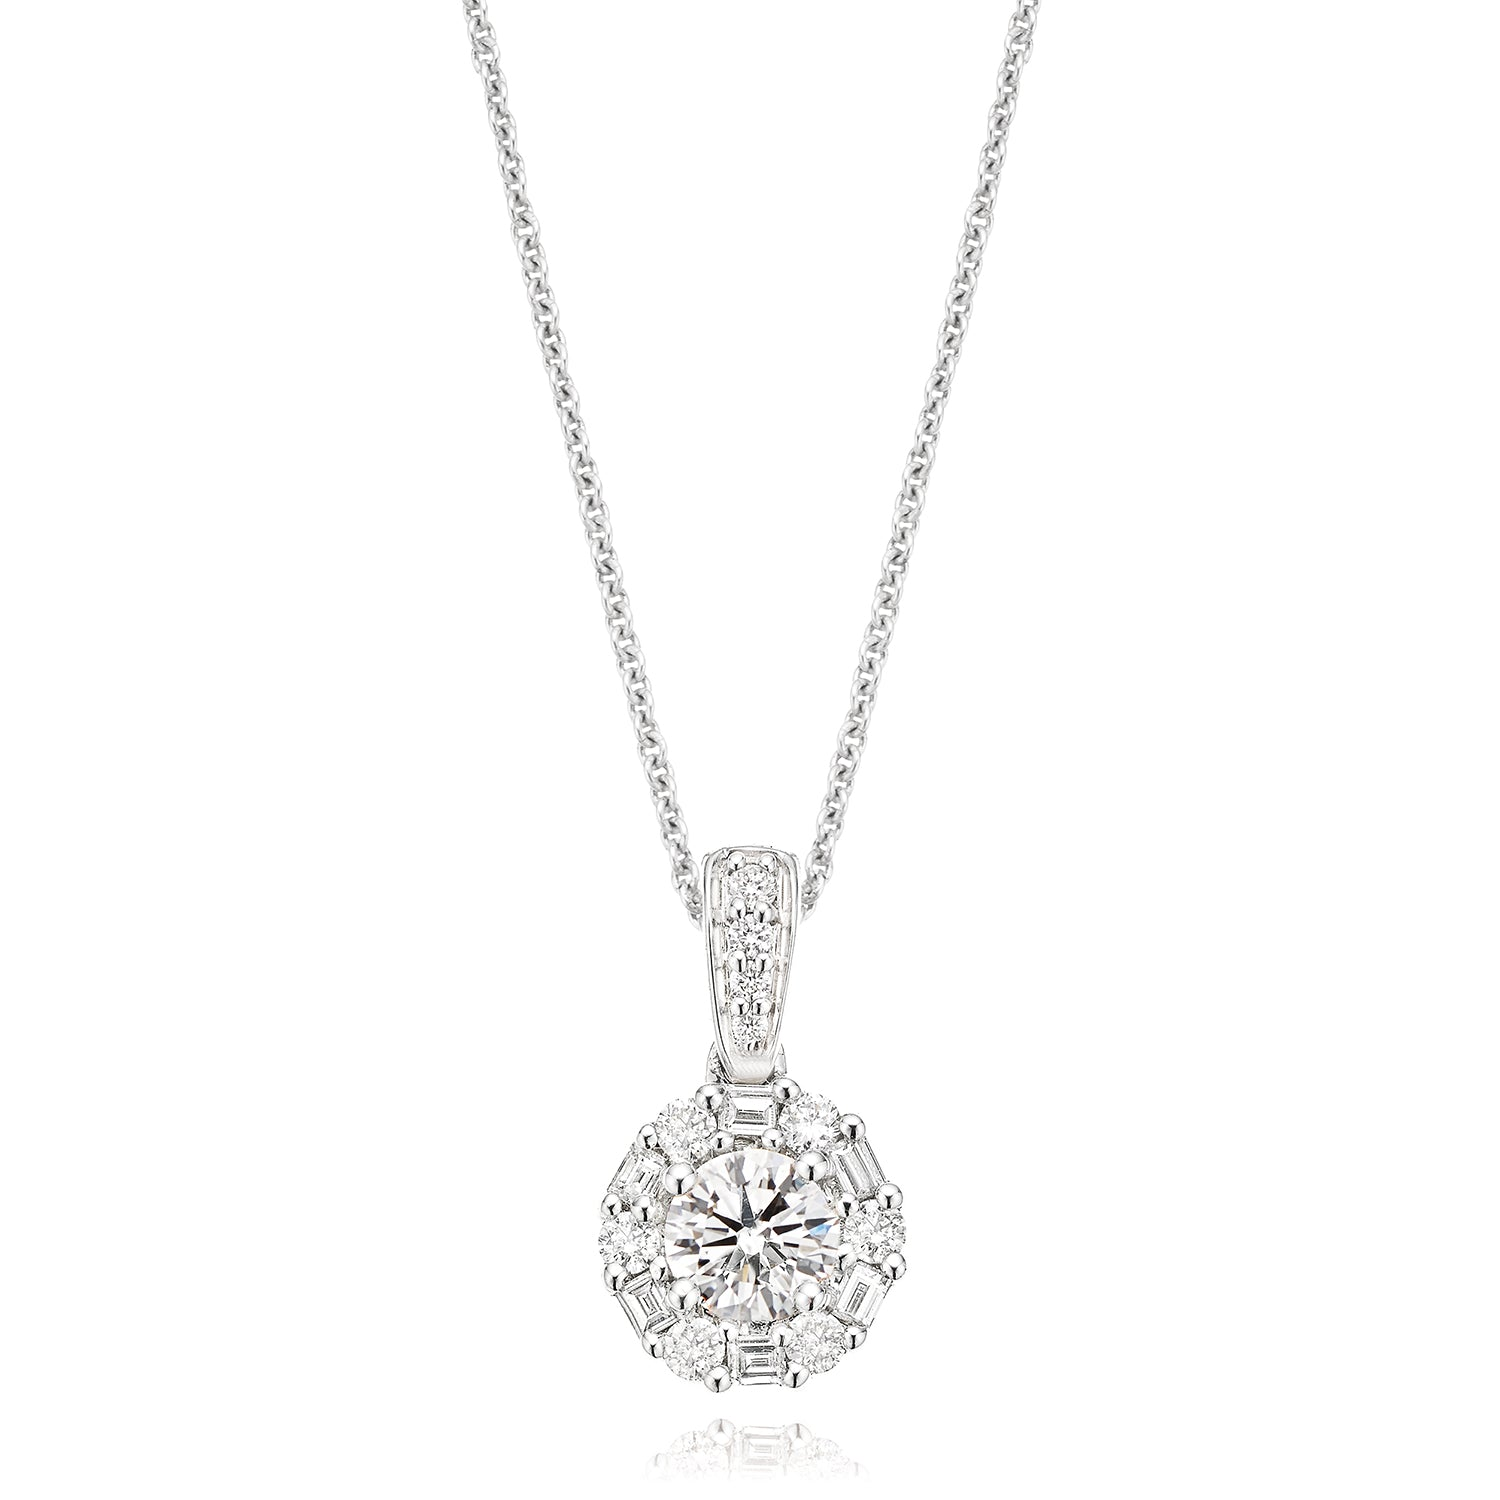 Rand 18ct White Gold Round Brilliant Cut with 0.45 CARAT tw of Diamond Pendant